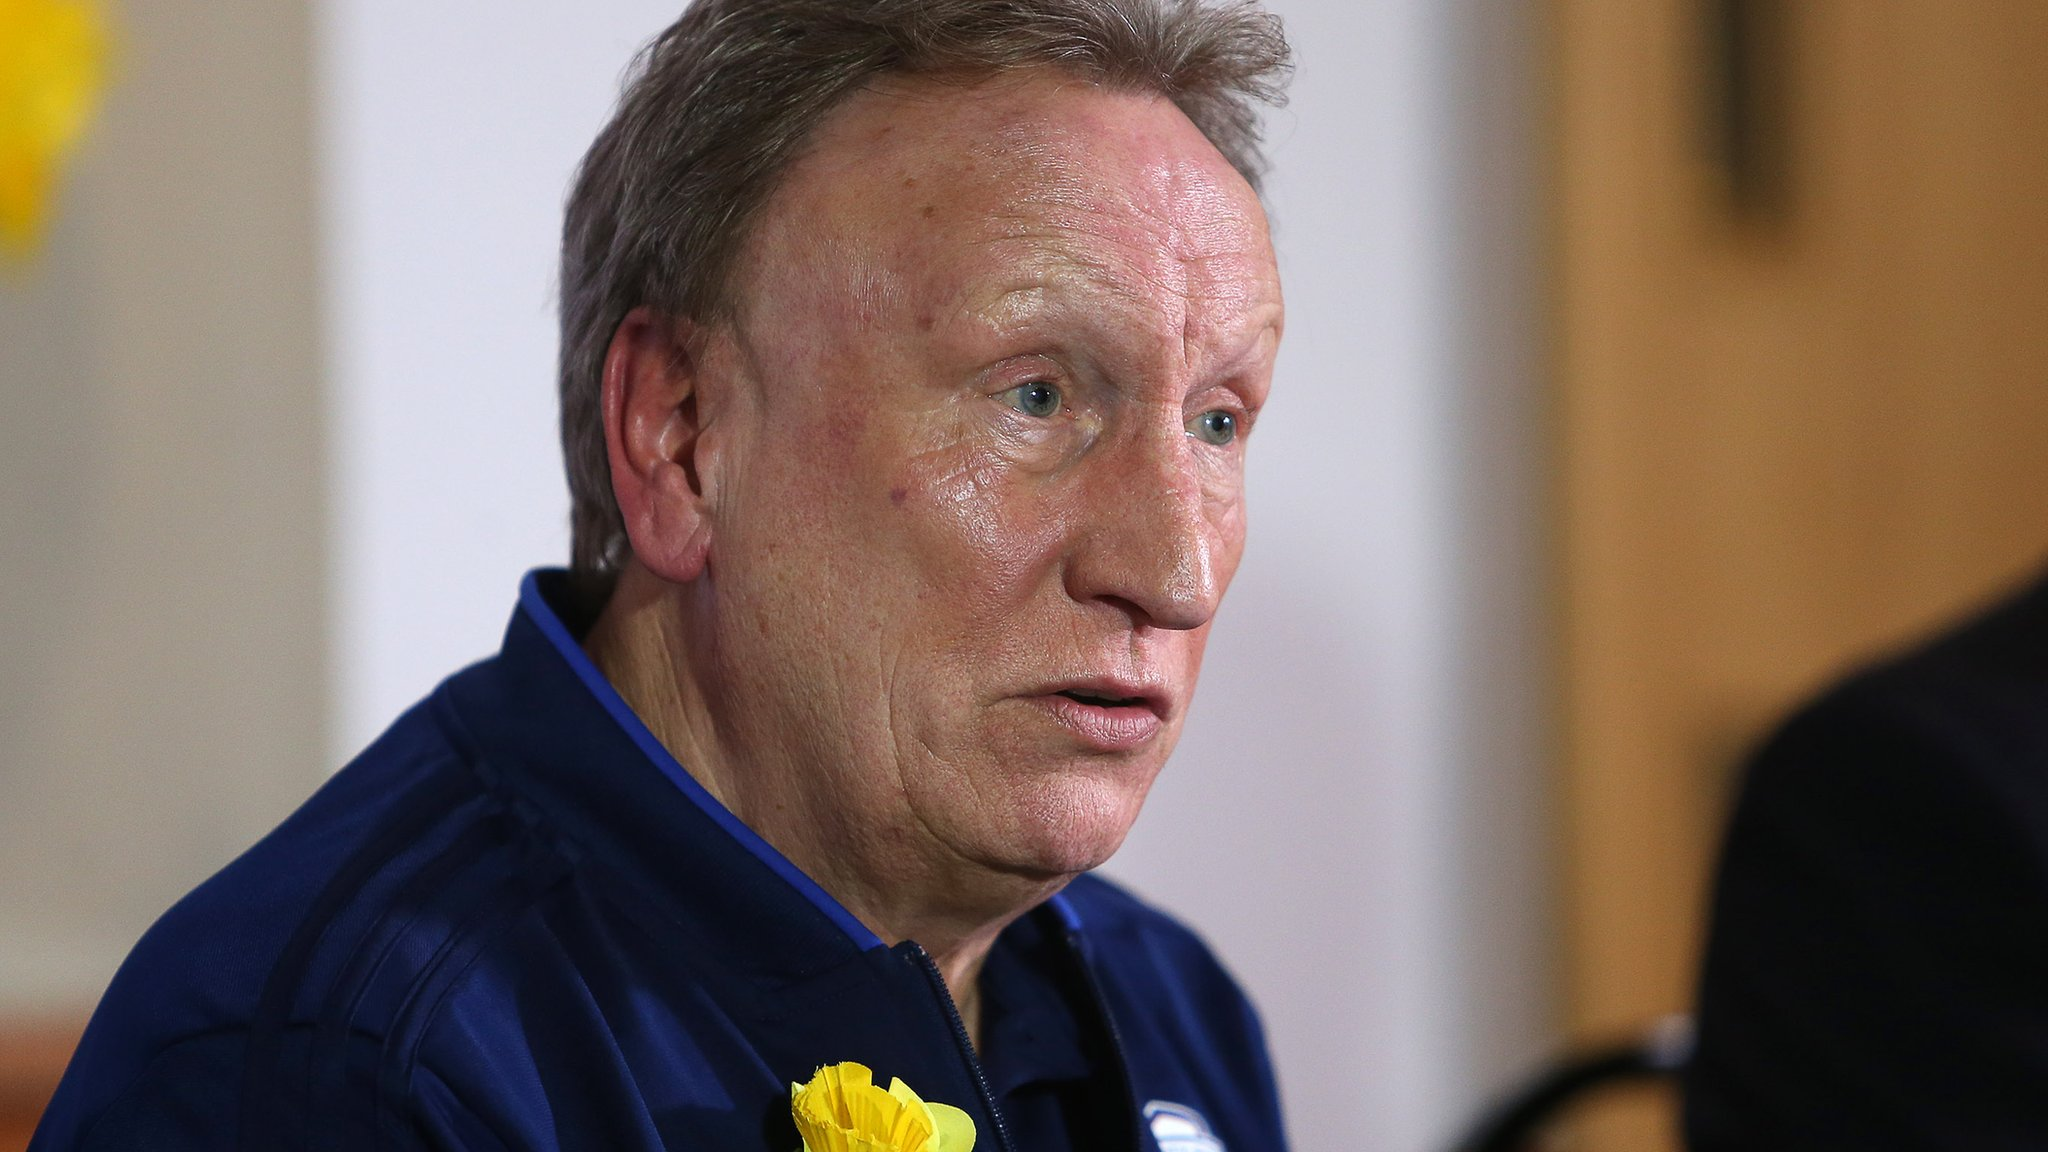 Emiliano Sala's Cardiff transfer could have been done better - Neil Warnock